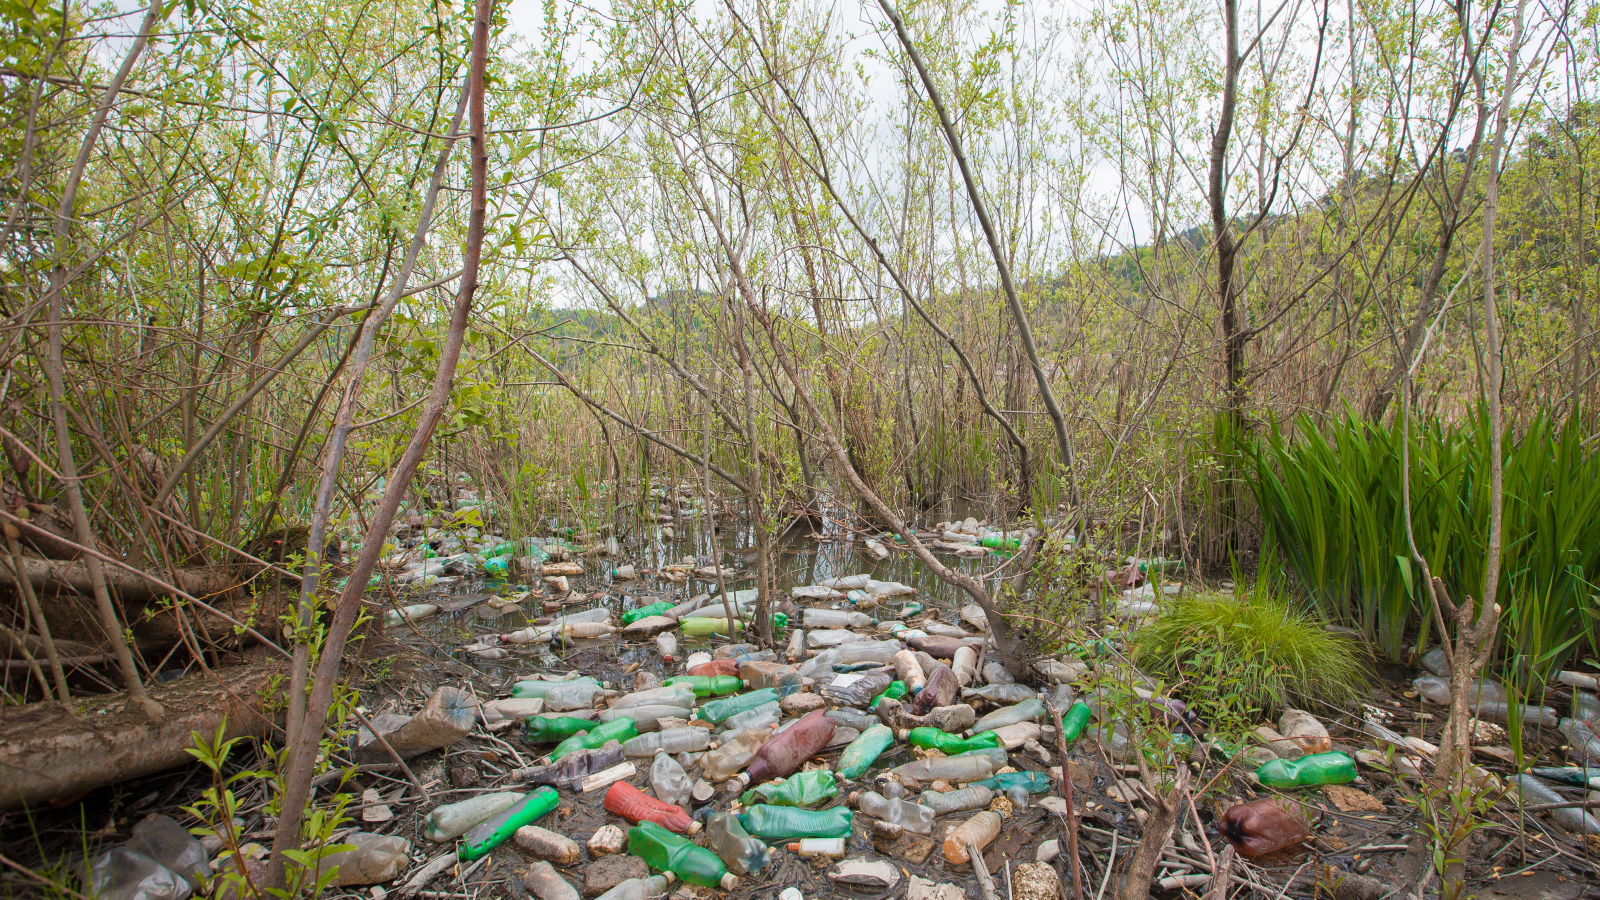 Plastic waste on Rioni River bank (April 2019)